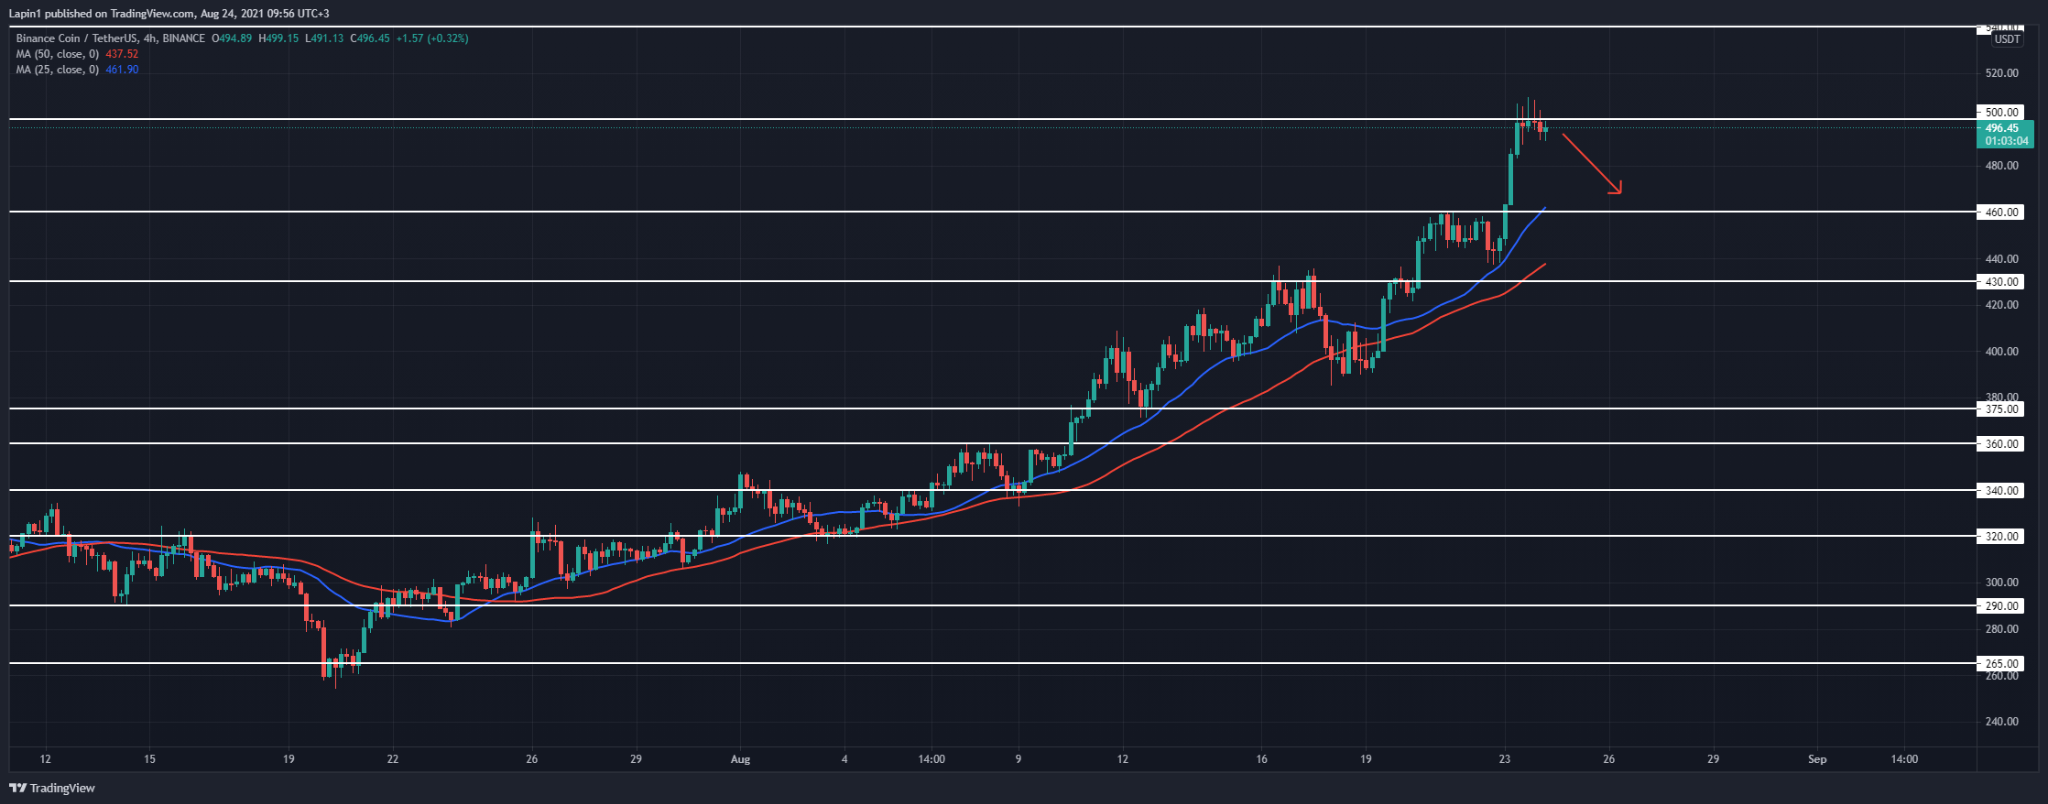 Binance Coin Price Analysis: BNB reached $500, set for a retracement today?